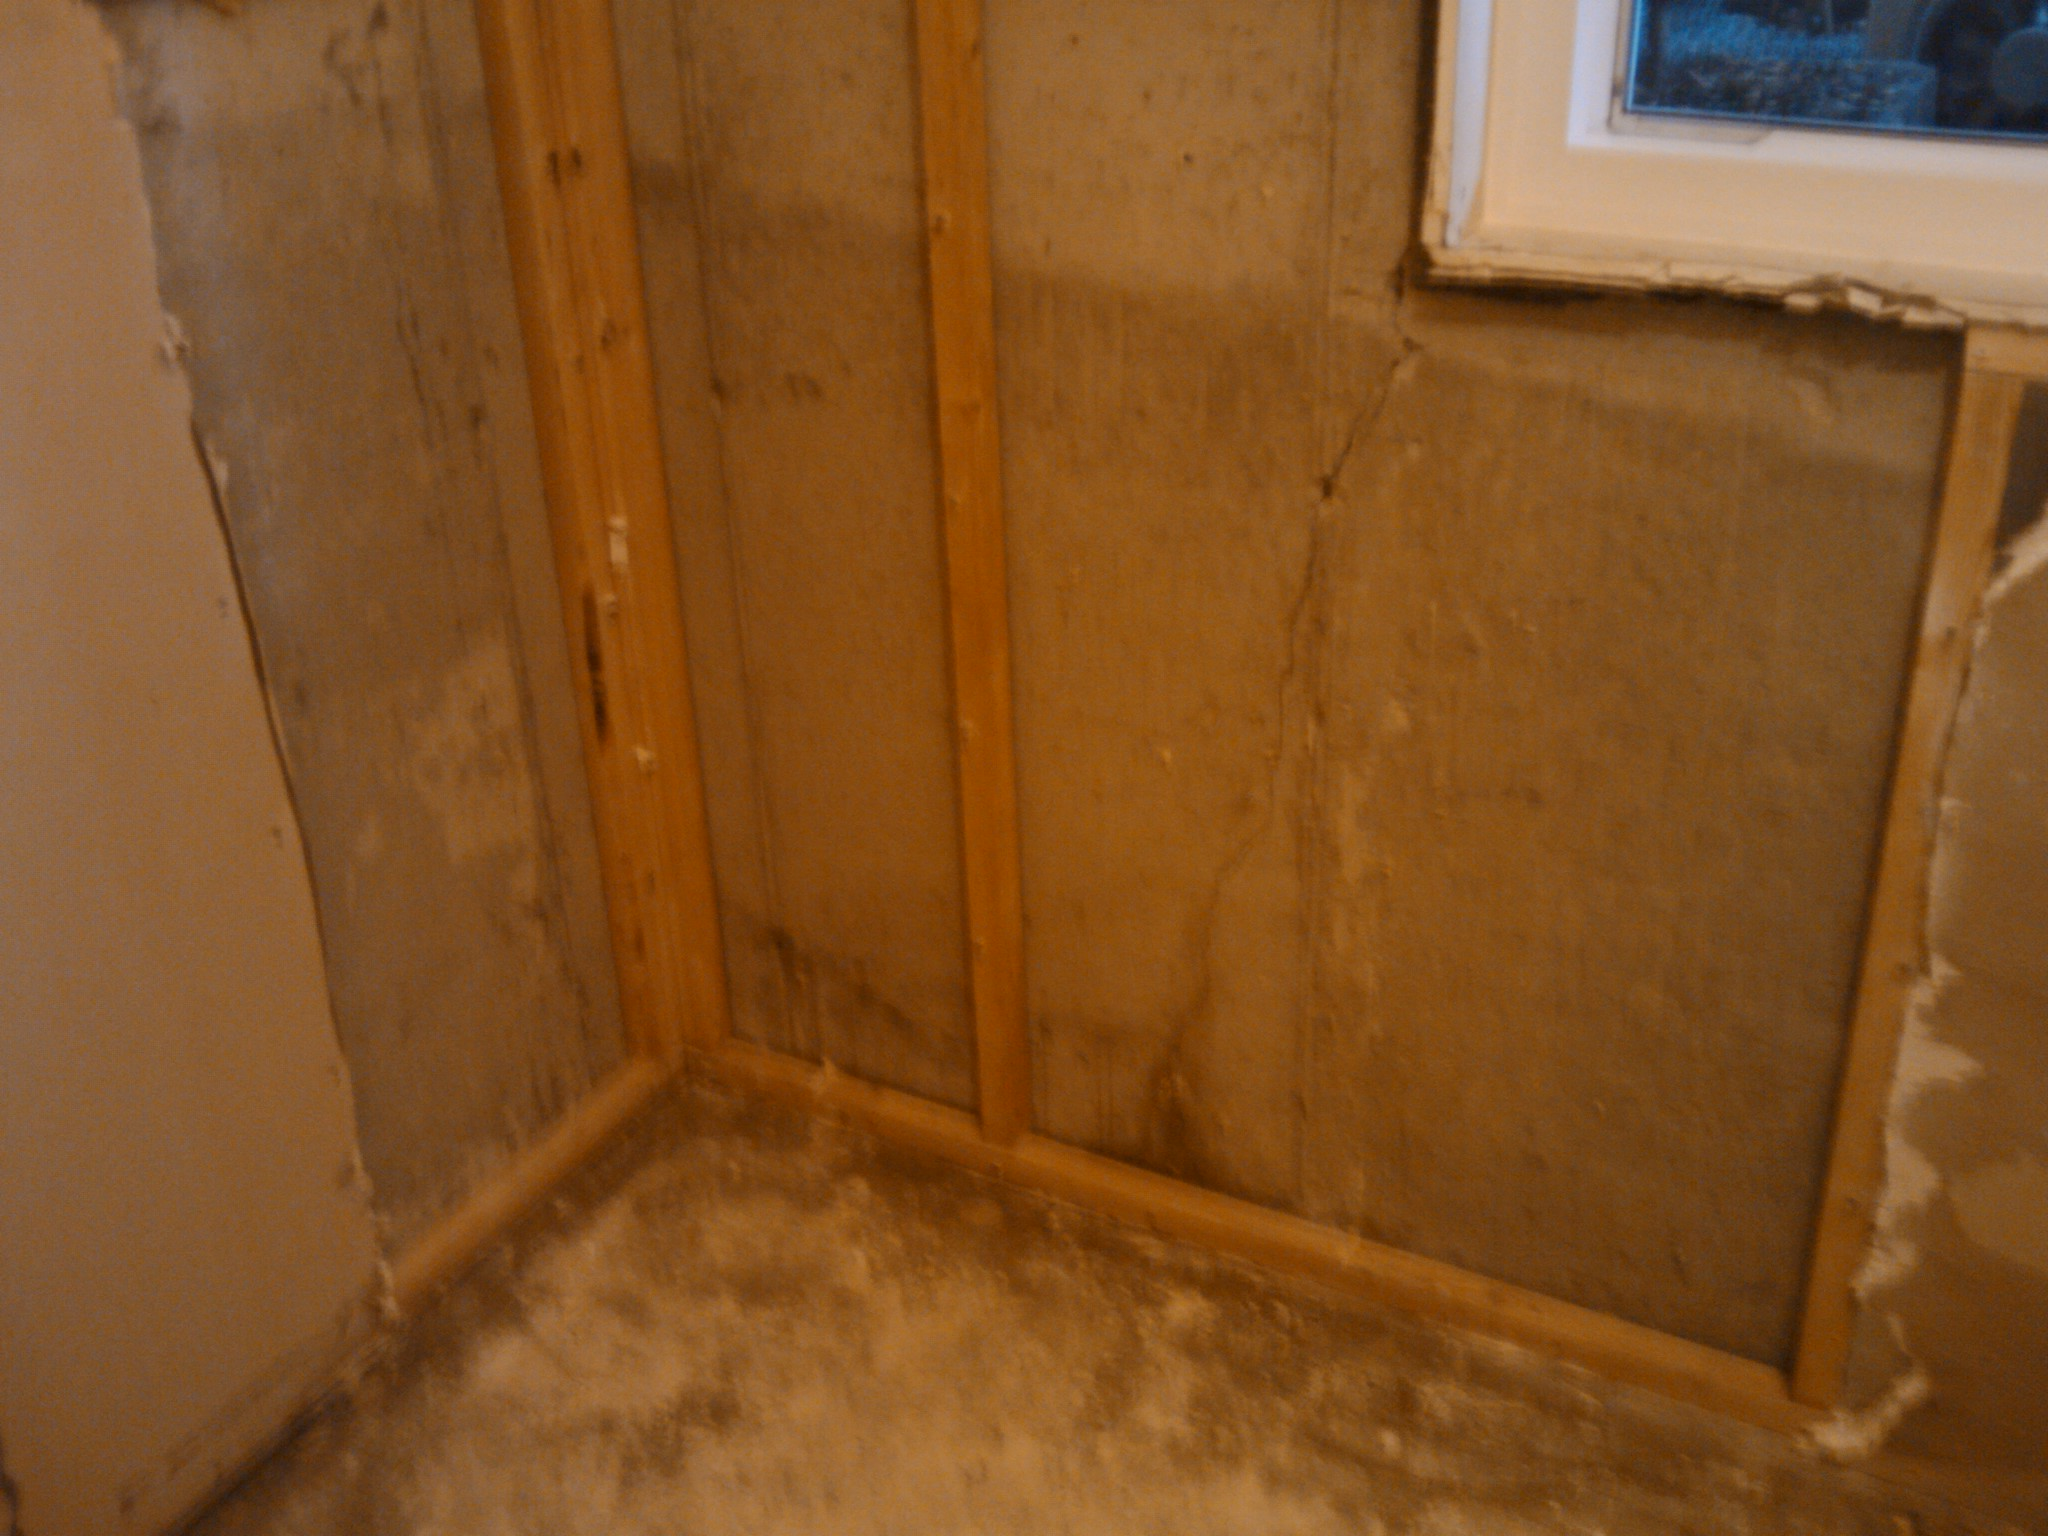 Repairing Basement Wall Crack   How Should I Proceed Foundation Crack Inside   ...